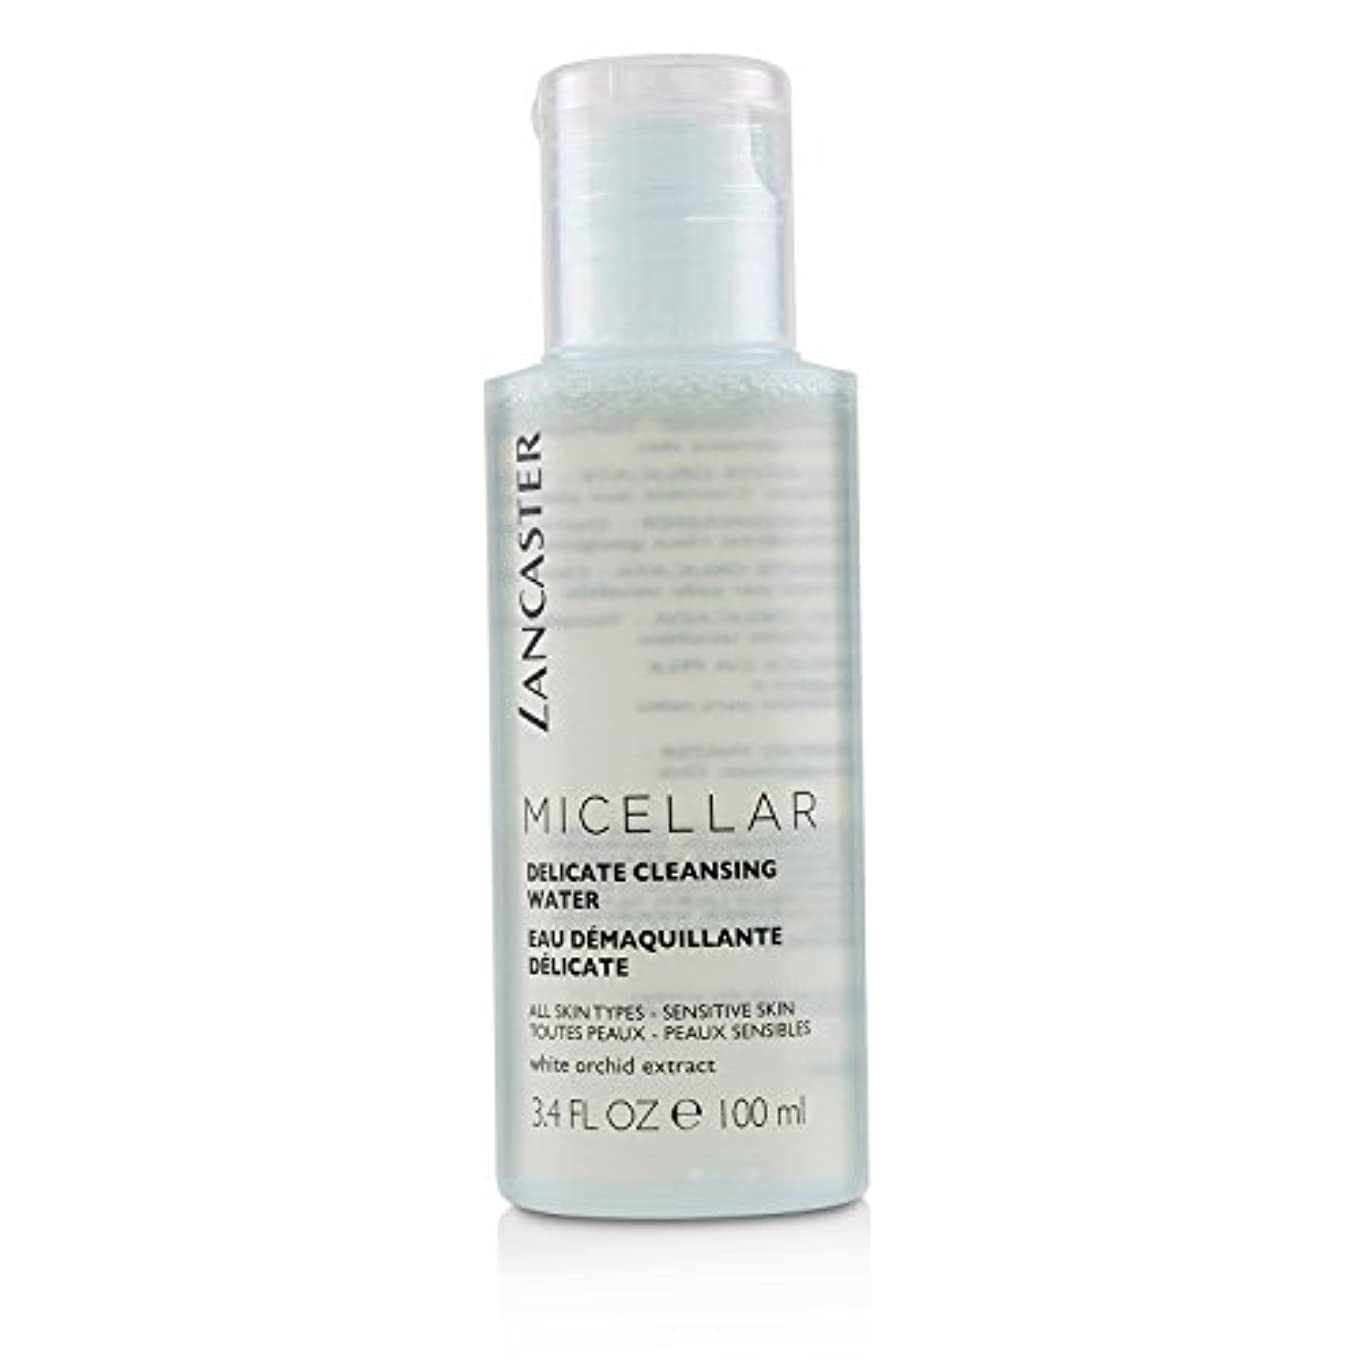 早熟優遇ストラップランカスター Micellar Delicate Cleansing Water - All Skin Types, Including Sensitive Skin 100ml/3.4oz並行輸入品